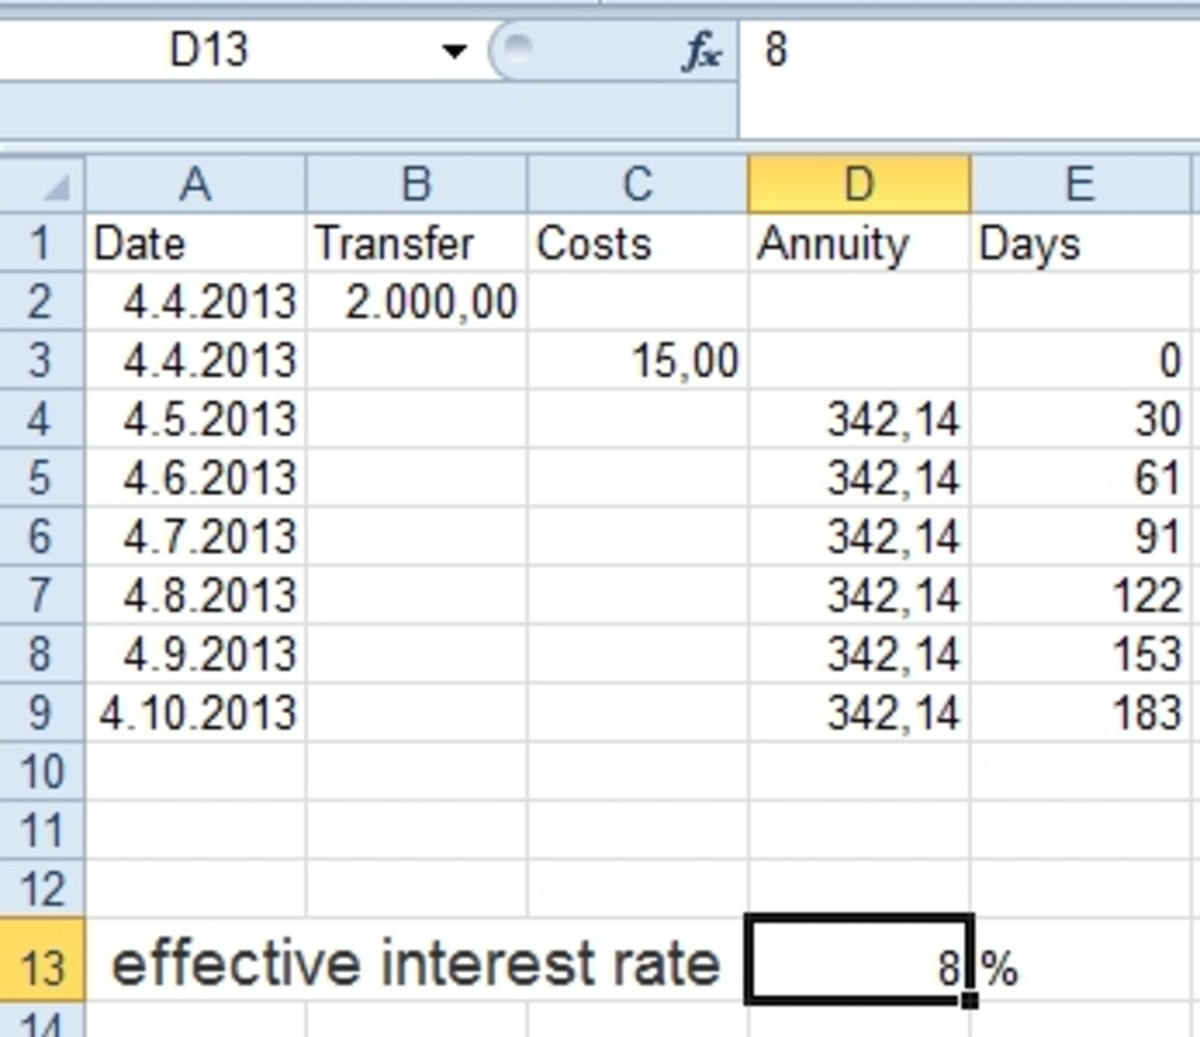 annuity-calculator-calculatethe-effective-interest-rate